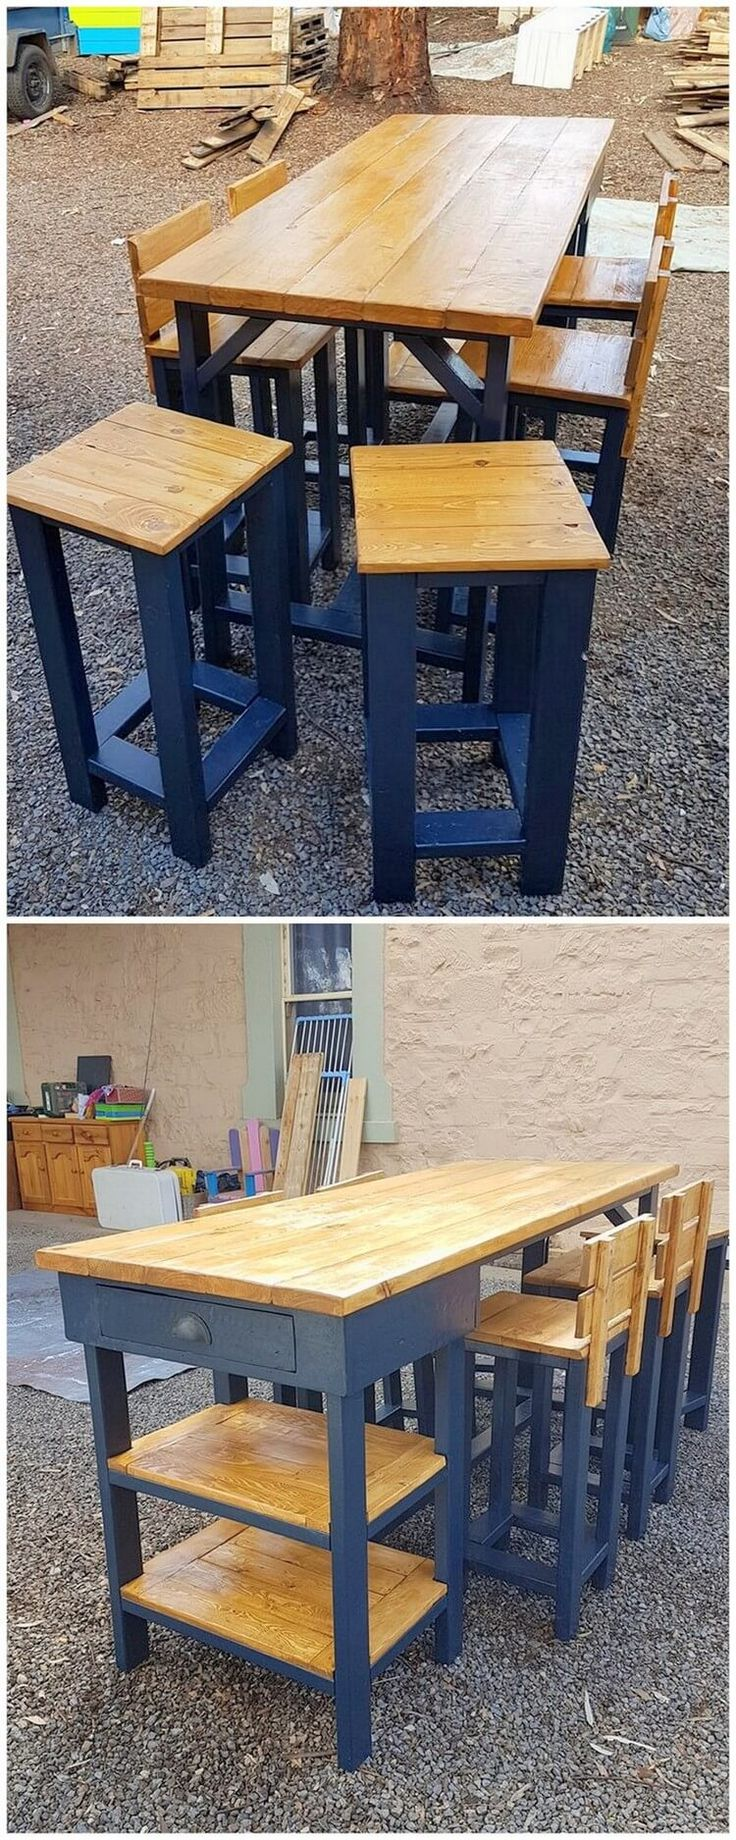 Pallet dining table - Creative Diy Wooden Pallets Reusing Ideas How About Having A Dining Table